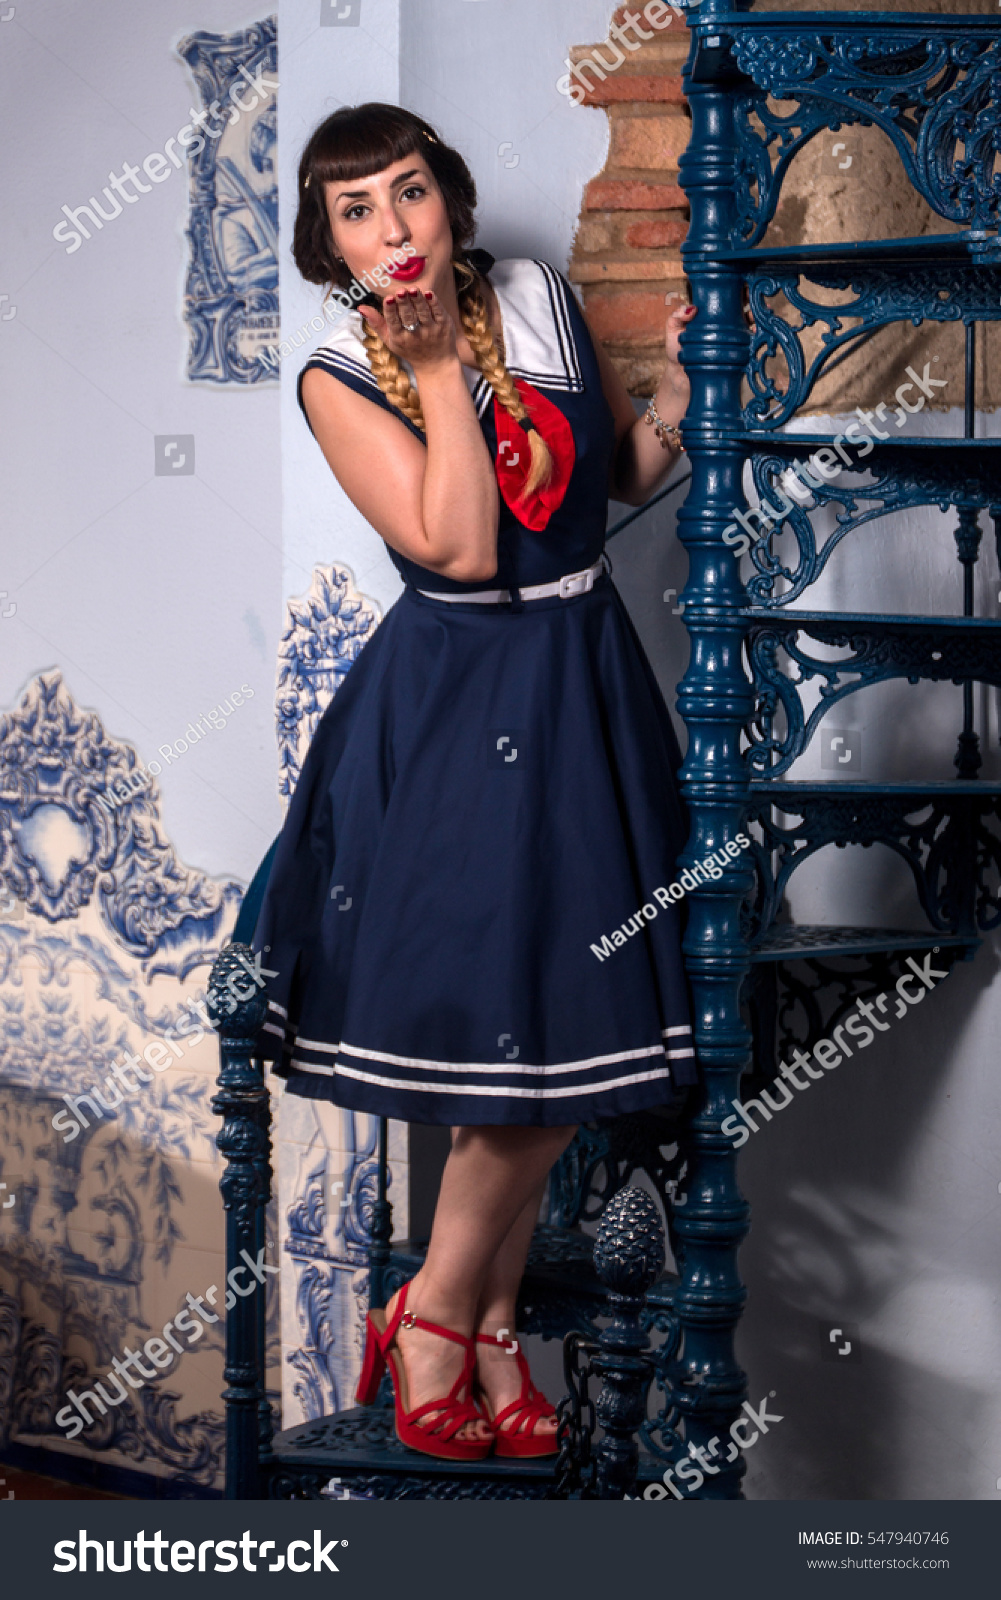 e2460f4d2 Cute Pinup Girl On Sailor Dress Stock Photo (Edit Now) 547940746 ...